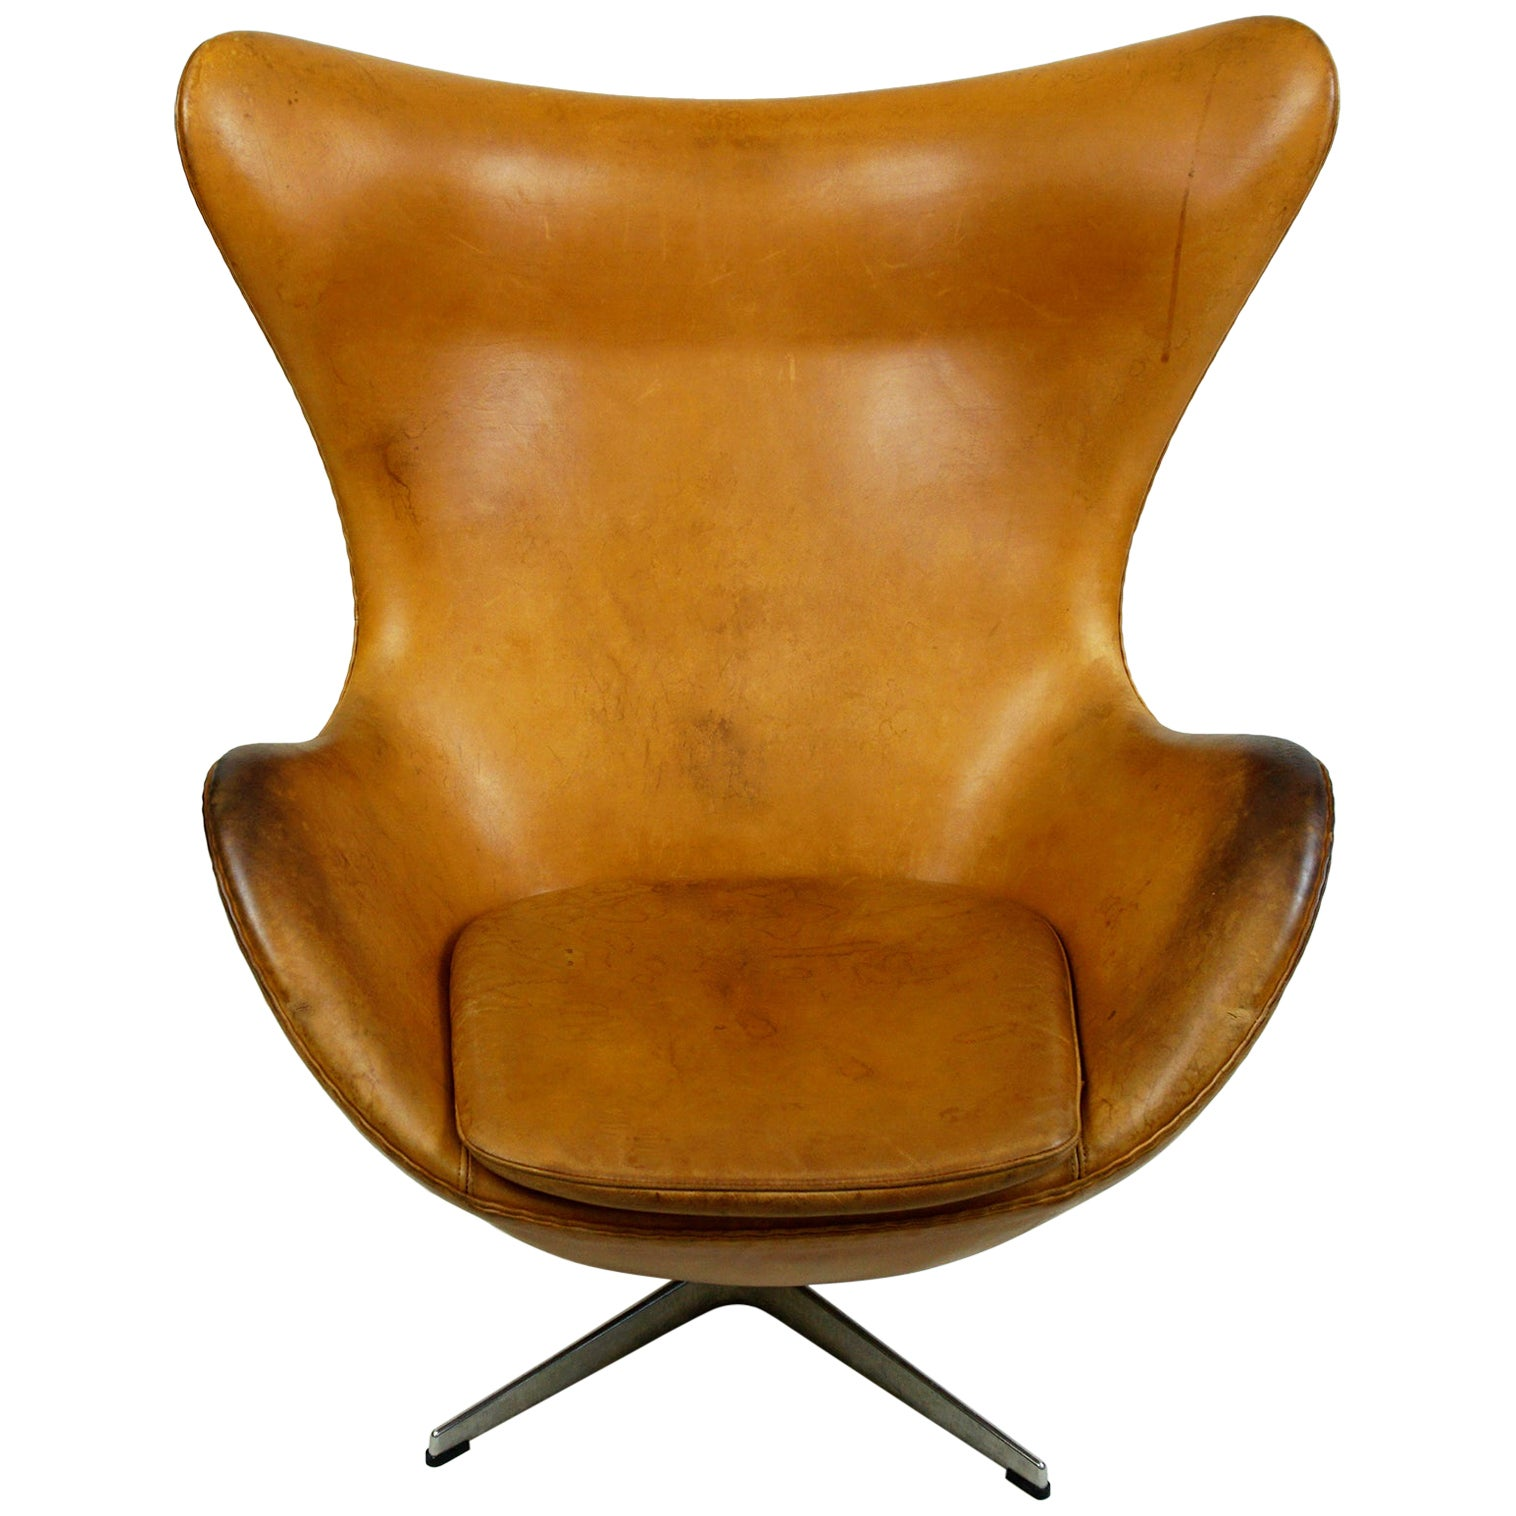 Cognac Leather Egg Chair, Mod. 3317 by Arne Jacobsen for Fritz Hansen